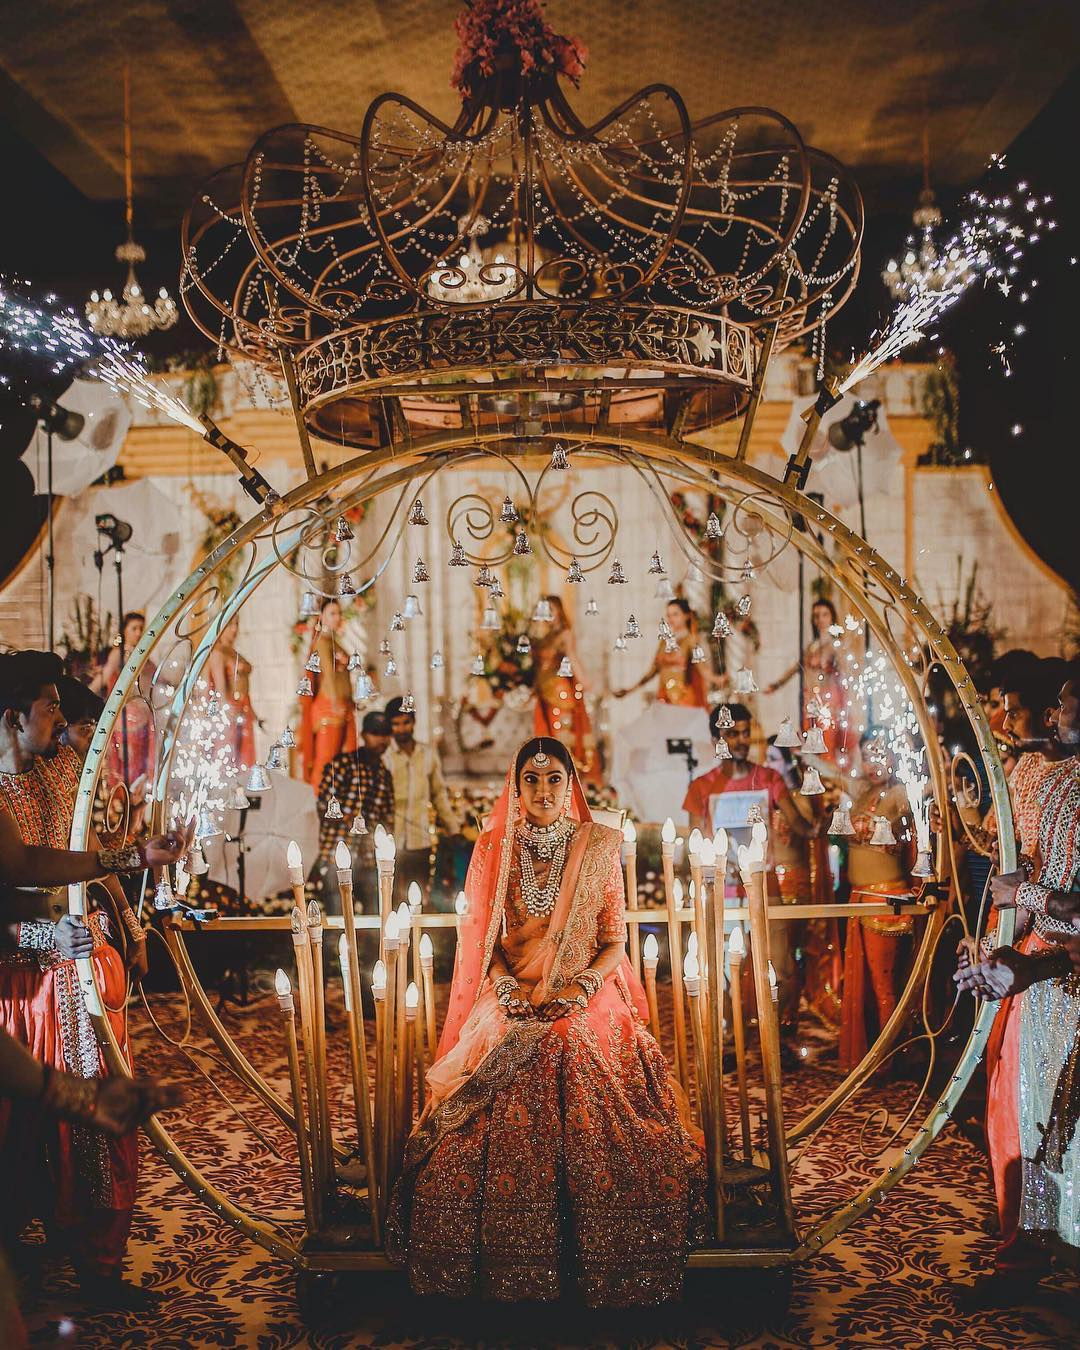 Palki bride entry theme - princess entry with a rolling fairytale like palki that's lit up with sparklers and lights